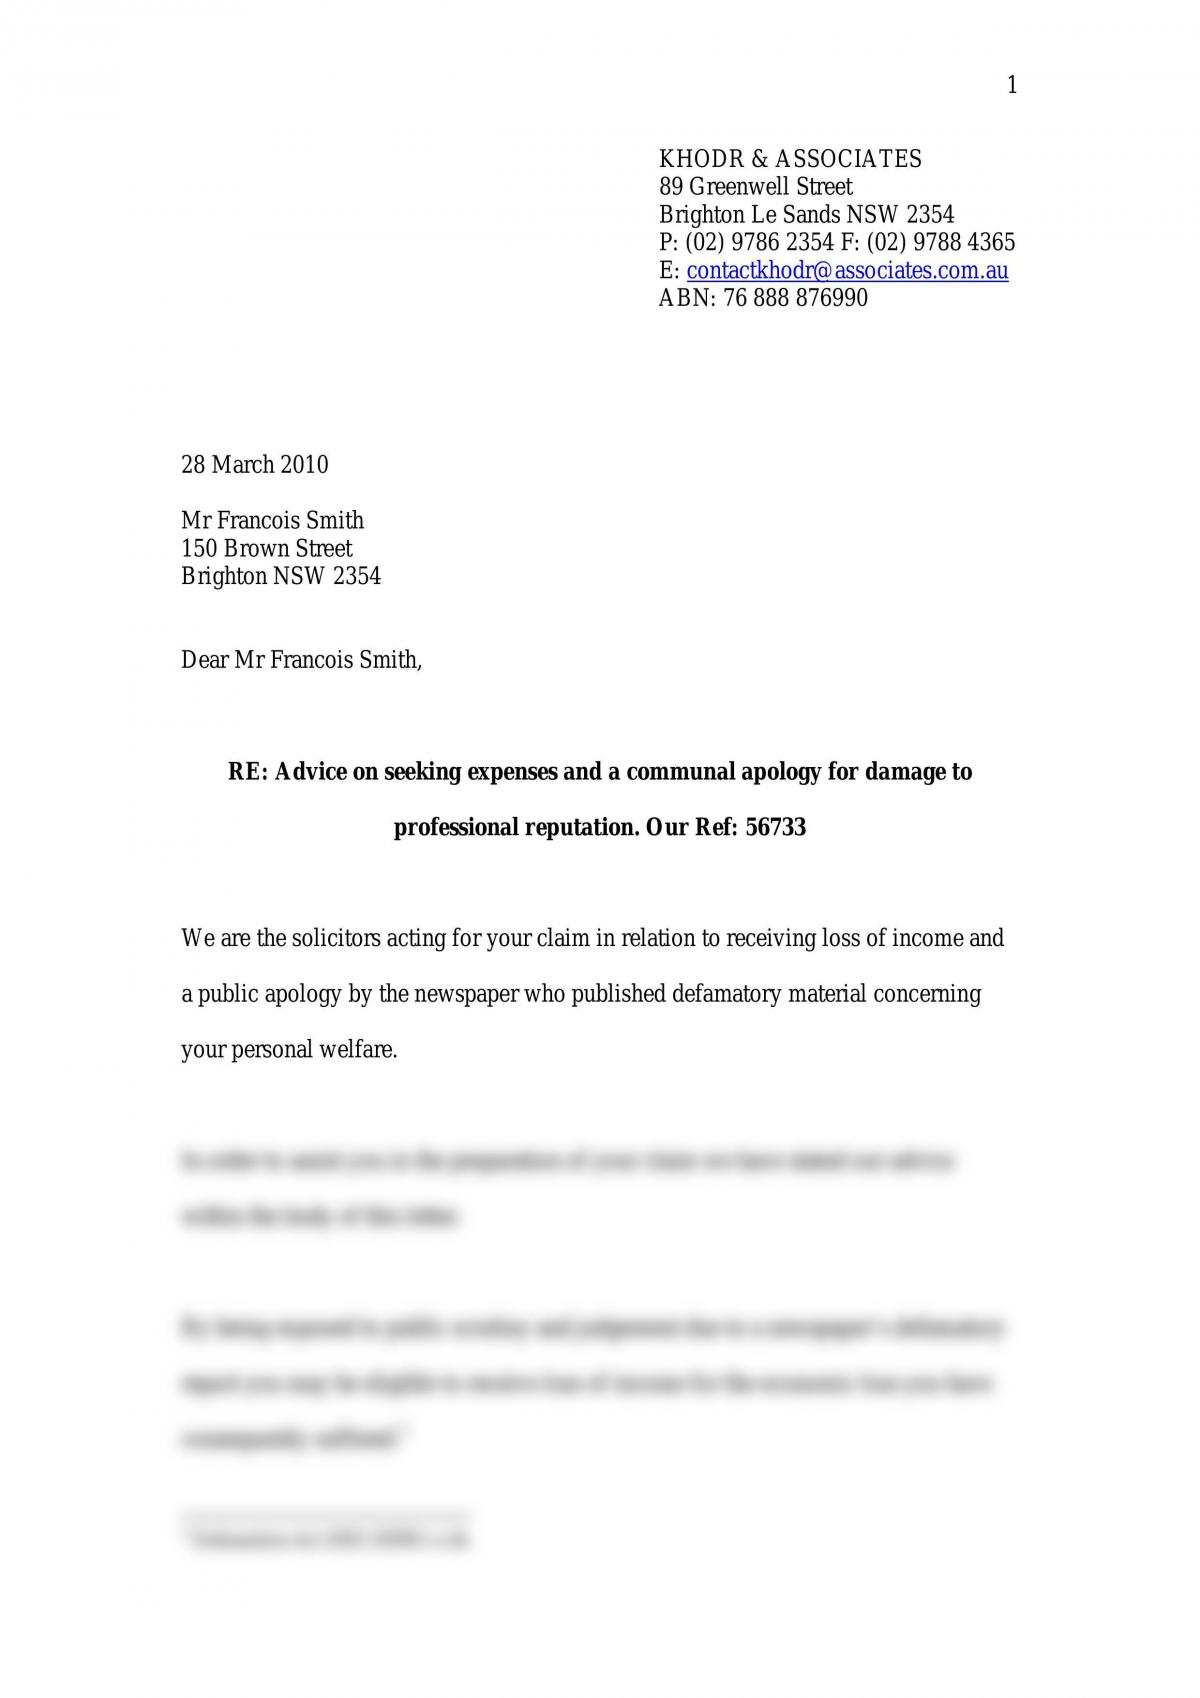 Torts Law- Letter \\\'Advice On Seeking Compensation And A Communal Apology For Damage To Professional Relationship\\\' - Page 1